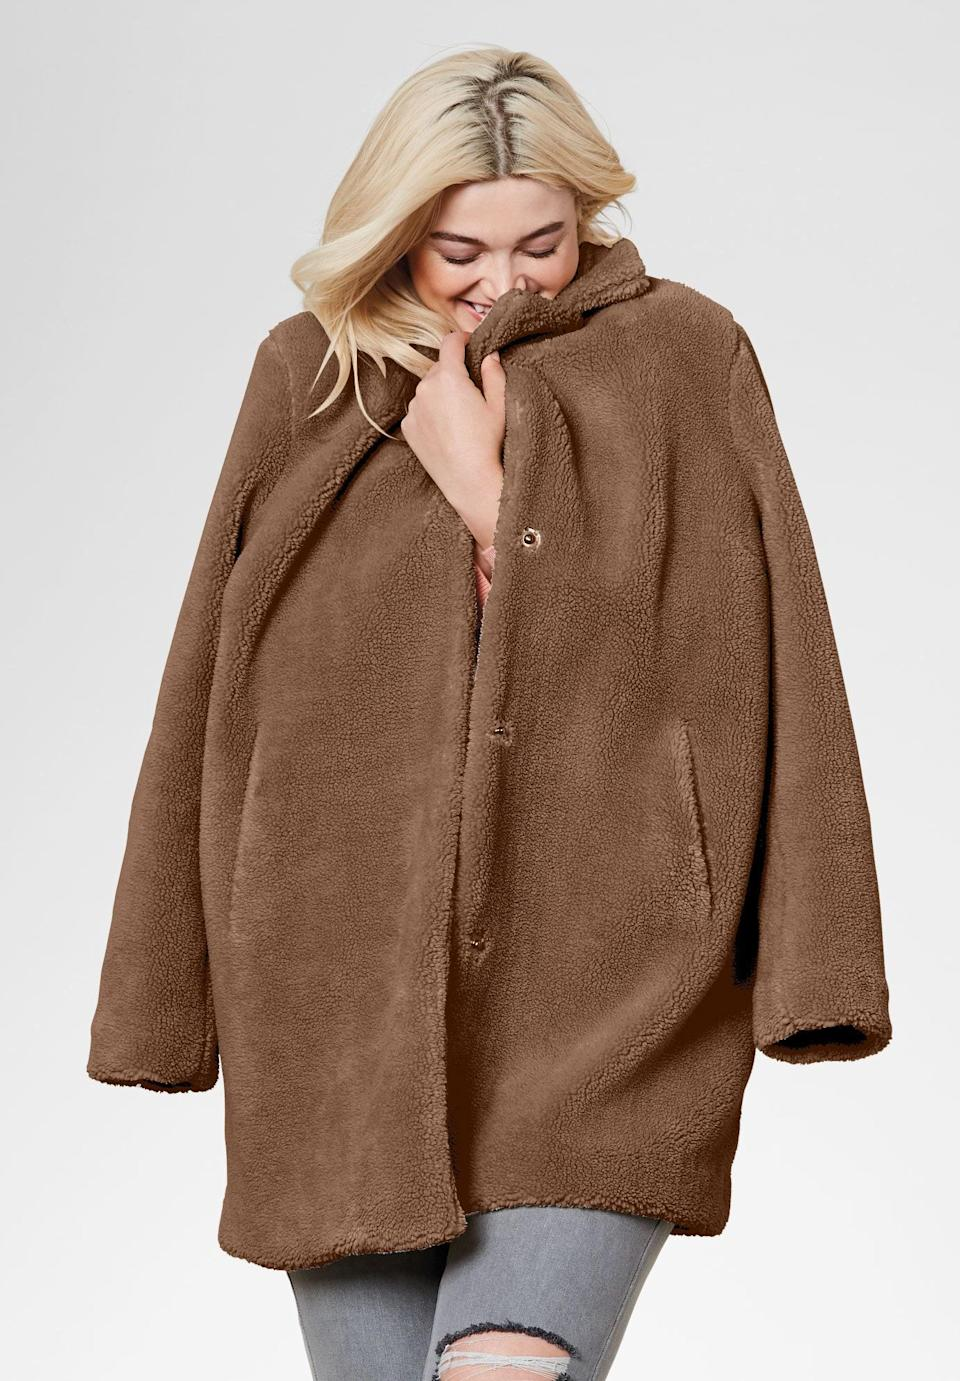 """Teddy coats are beloved because they'll make you look like the model in this photo: cozy, cute, and wildly pleased at looking so cozy and so cute. Ellos is also a Swedish brand, and considering Sweden is part of the Arctic region, it definitely knows a thing or two about creating warm outerwear. $51, Amazon. <a href=""""https://amzn.to/31q0hjJ"""" rel=""""nofollow noopener"""" target=""""_blank"""" data-ylk=""""slk:Get it now!"""" class=""""link rapid-noclick-resp"""">Get it now!</a>"""